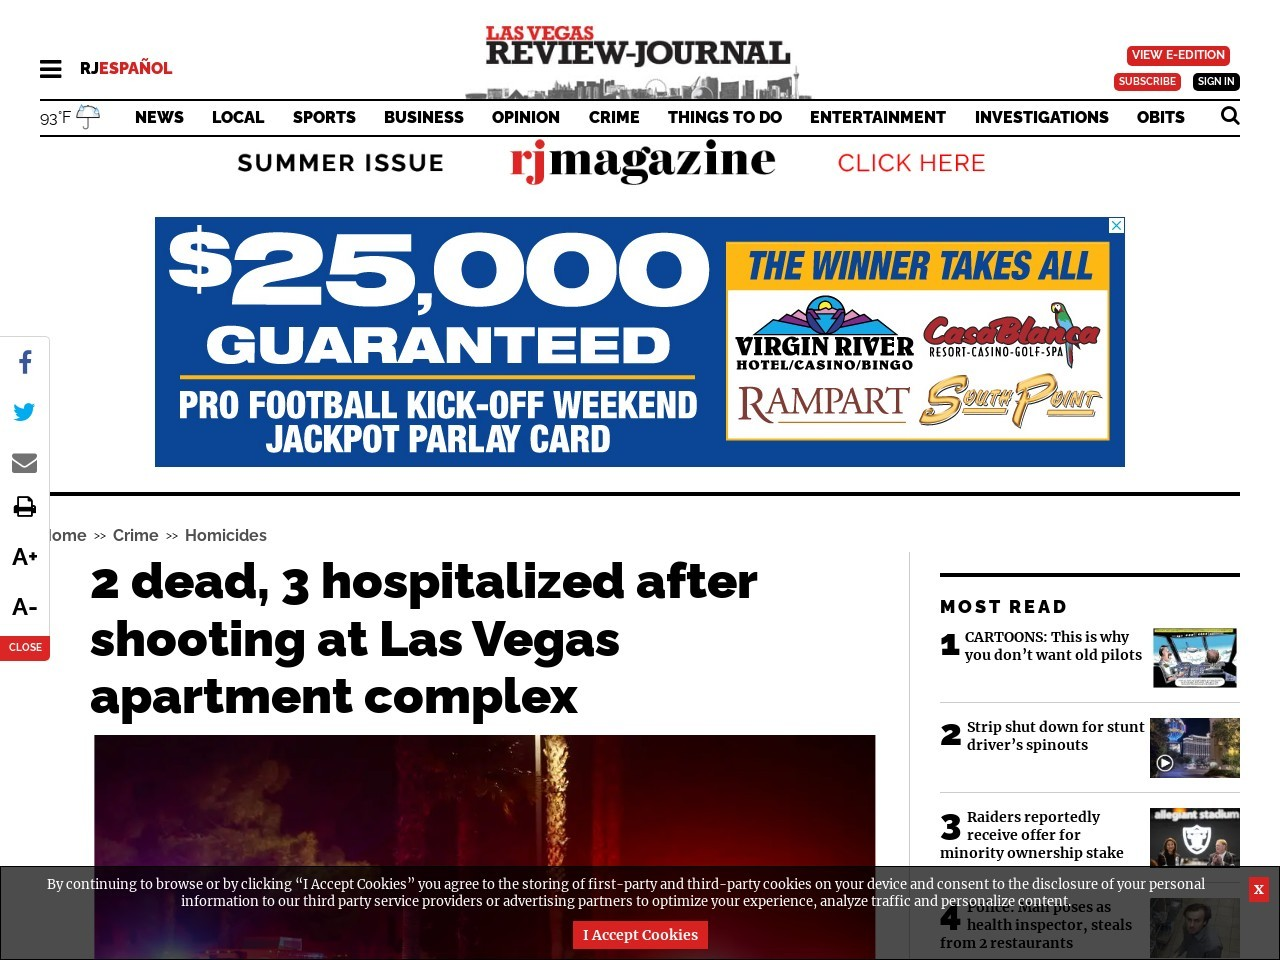 2 dead, 3 hospitalized after shooting at Las Vegas apartment complex